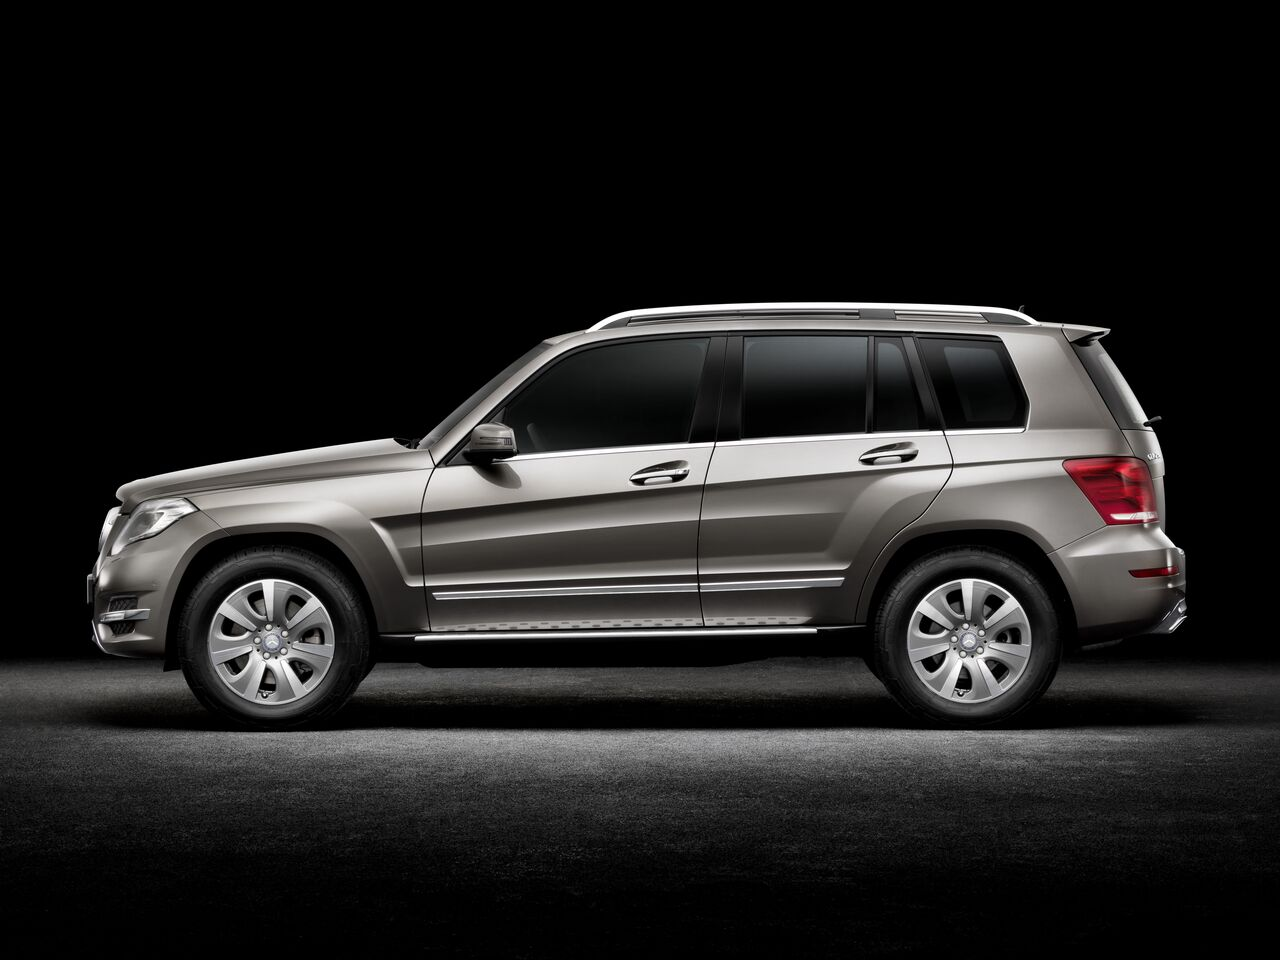 mercedes classe glk nouvelle g n ration road and motors. Black Bedroom Furniture Sets. Home Design Ideas